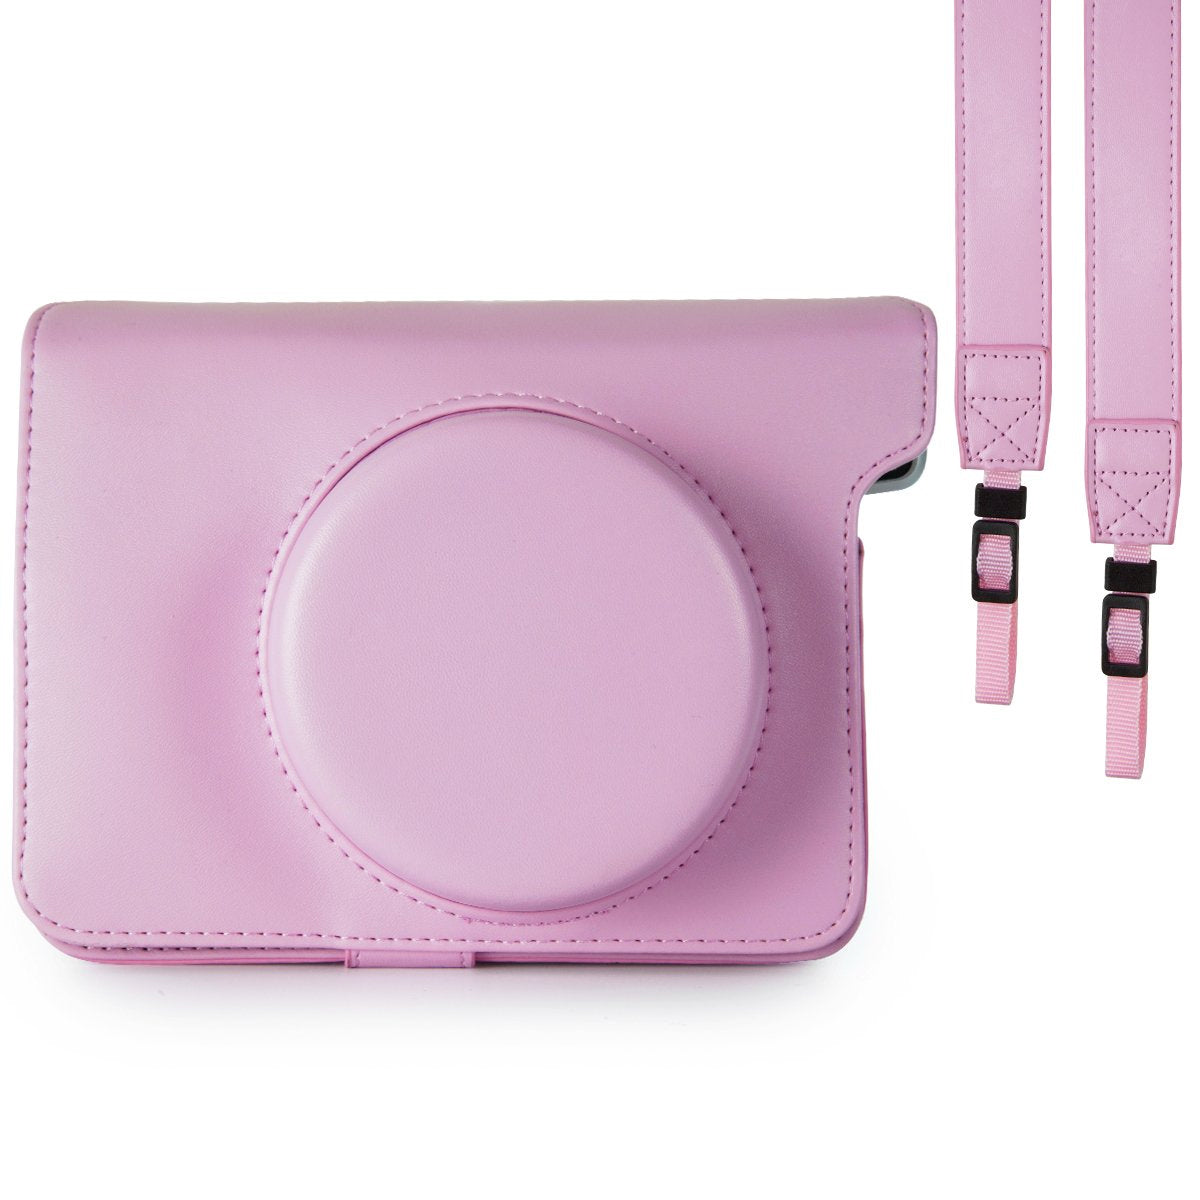 ZENKO WIDE 300 INSTAX CAMERA COVER POUCH BAG ( PINK)